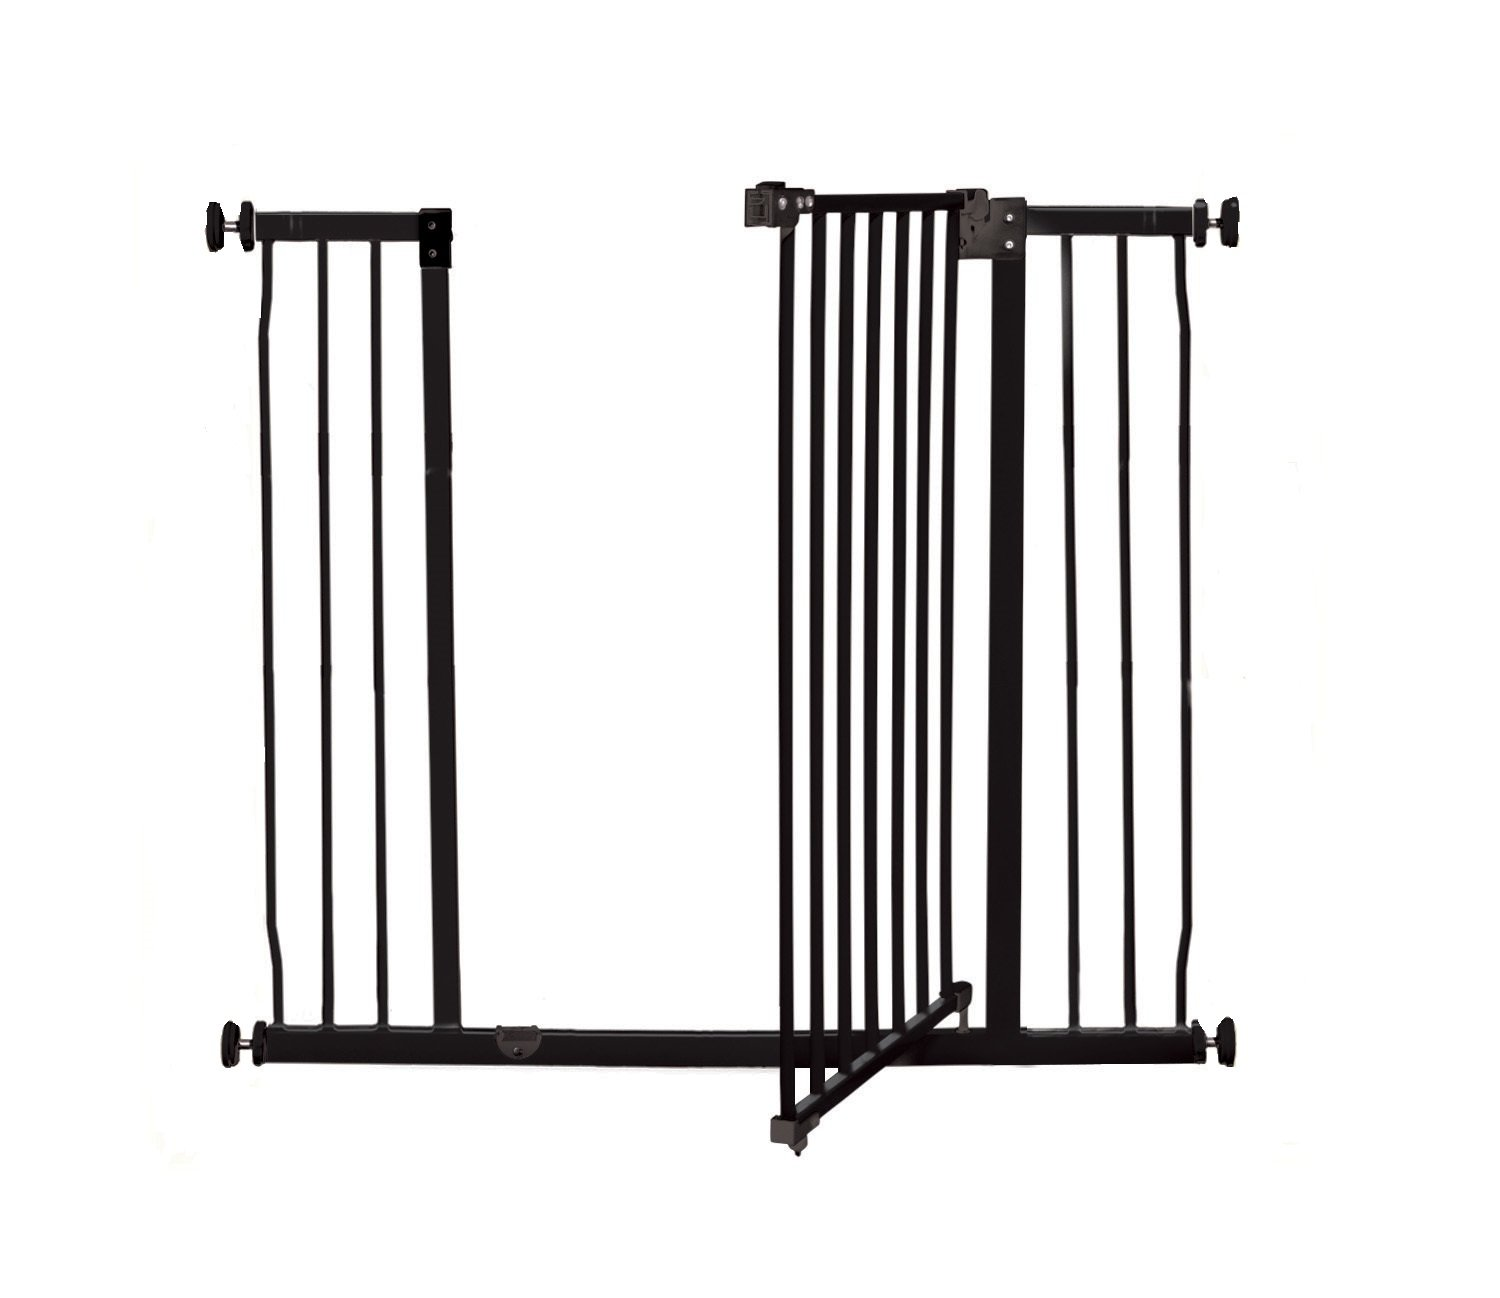 Dreambaby Liberty Xtra-Tall & Wide Safety Gate (Fits 99cm-106cm) Black Dreambaby MEASURE YOUR OPENING BEFORE PURCHASING - This gate ONLY fits openings 99 to 106 cm. It will not fit any opening smaller than 99 cm. If your opening is larger than 106 cm you will require an additional purchase of an extension. VERSATILE AND DEPENDABLE- Our Dreambaby Liberty gate is loaded with features to not only help make your life easier but safer too. Versatile indeed, it can accommodate openings of 99 to 106 cm wide and is 93 cm tall. Using optional extensions sold separately, the gate can be extended up to 306 cm. ONE HANDED OPERATION - The One-Handed operation is fantastic for times when you're holding your child and the double locking feature ensures extra security to help keep your child safer. 2